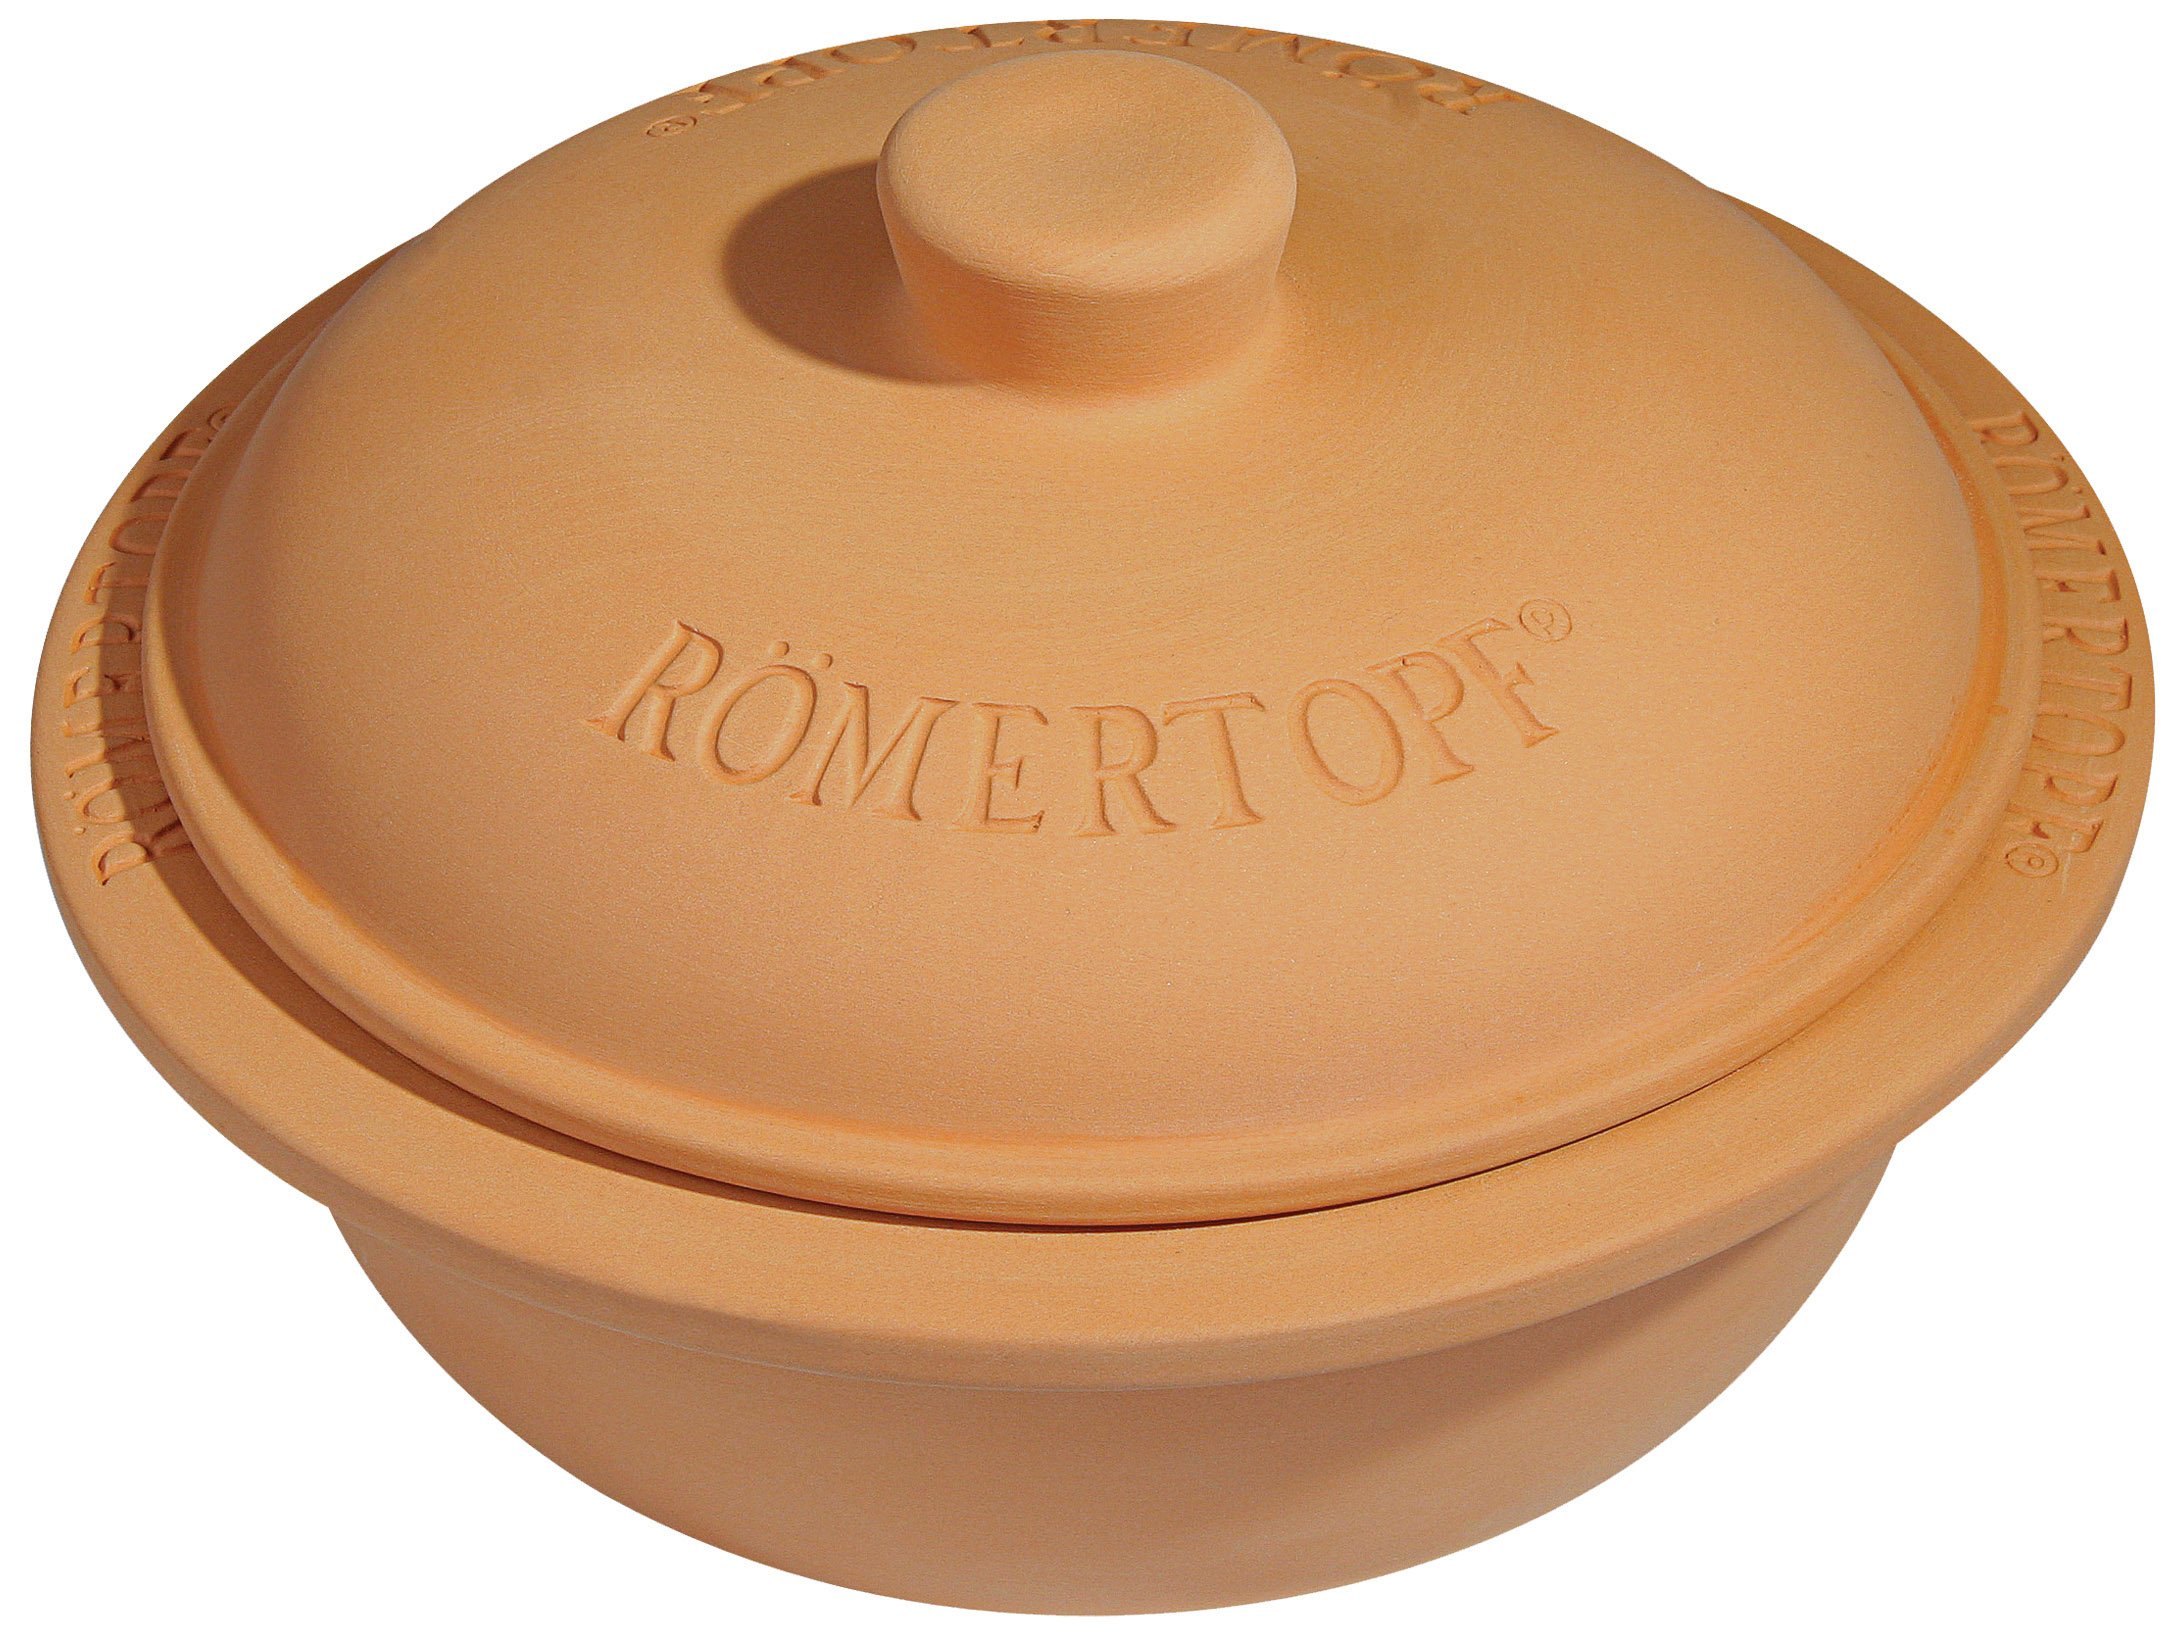 Romertopf by Reston Lloyd Natural Glazed Clay Cooker, Round Casserole, 4-Quart